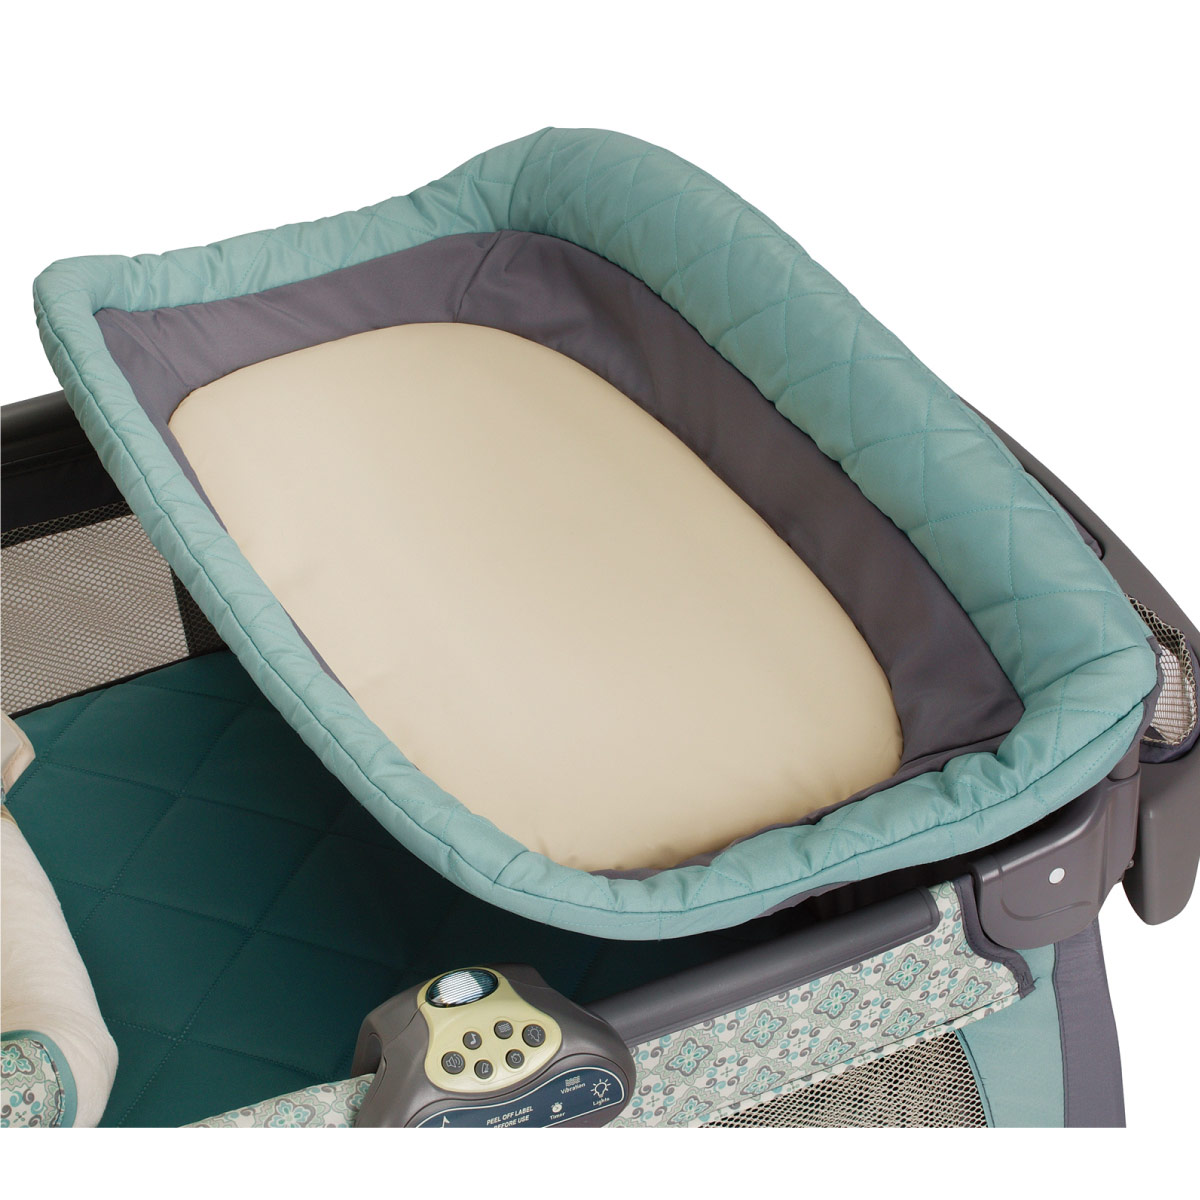 Pack'n_Play_Playard_Premium_4969220003726_09